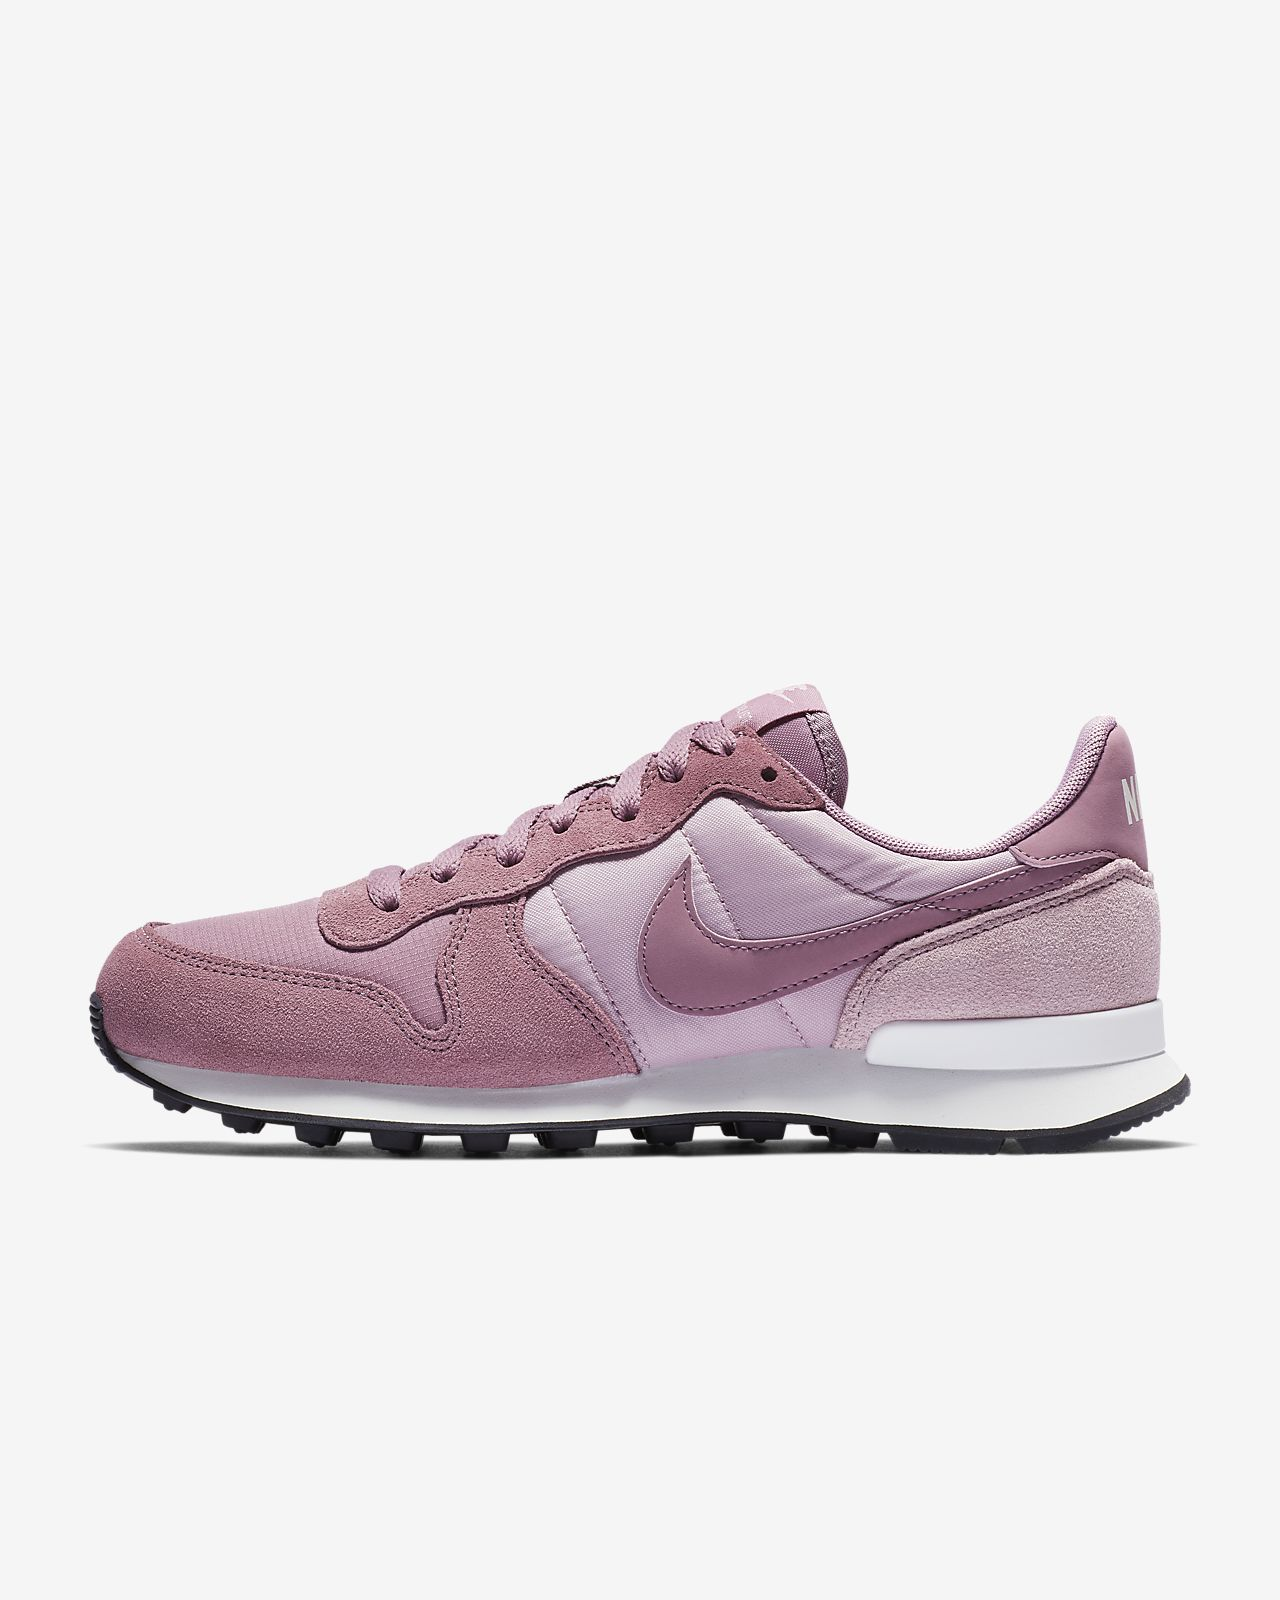 buy popular 03afc 818c2 Low Resolution Nike Internationalist Womens Shoe Nike Internationalist  Womens Shoe